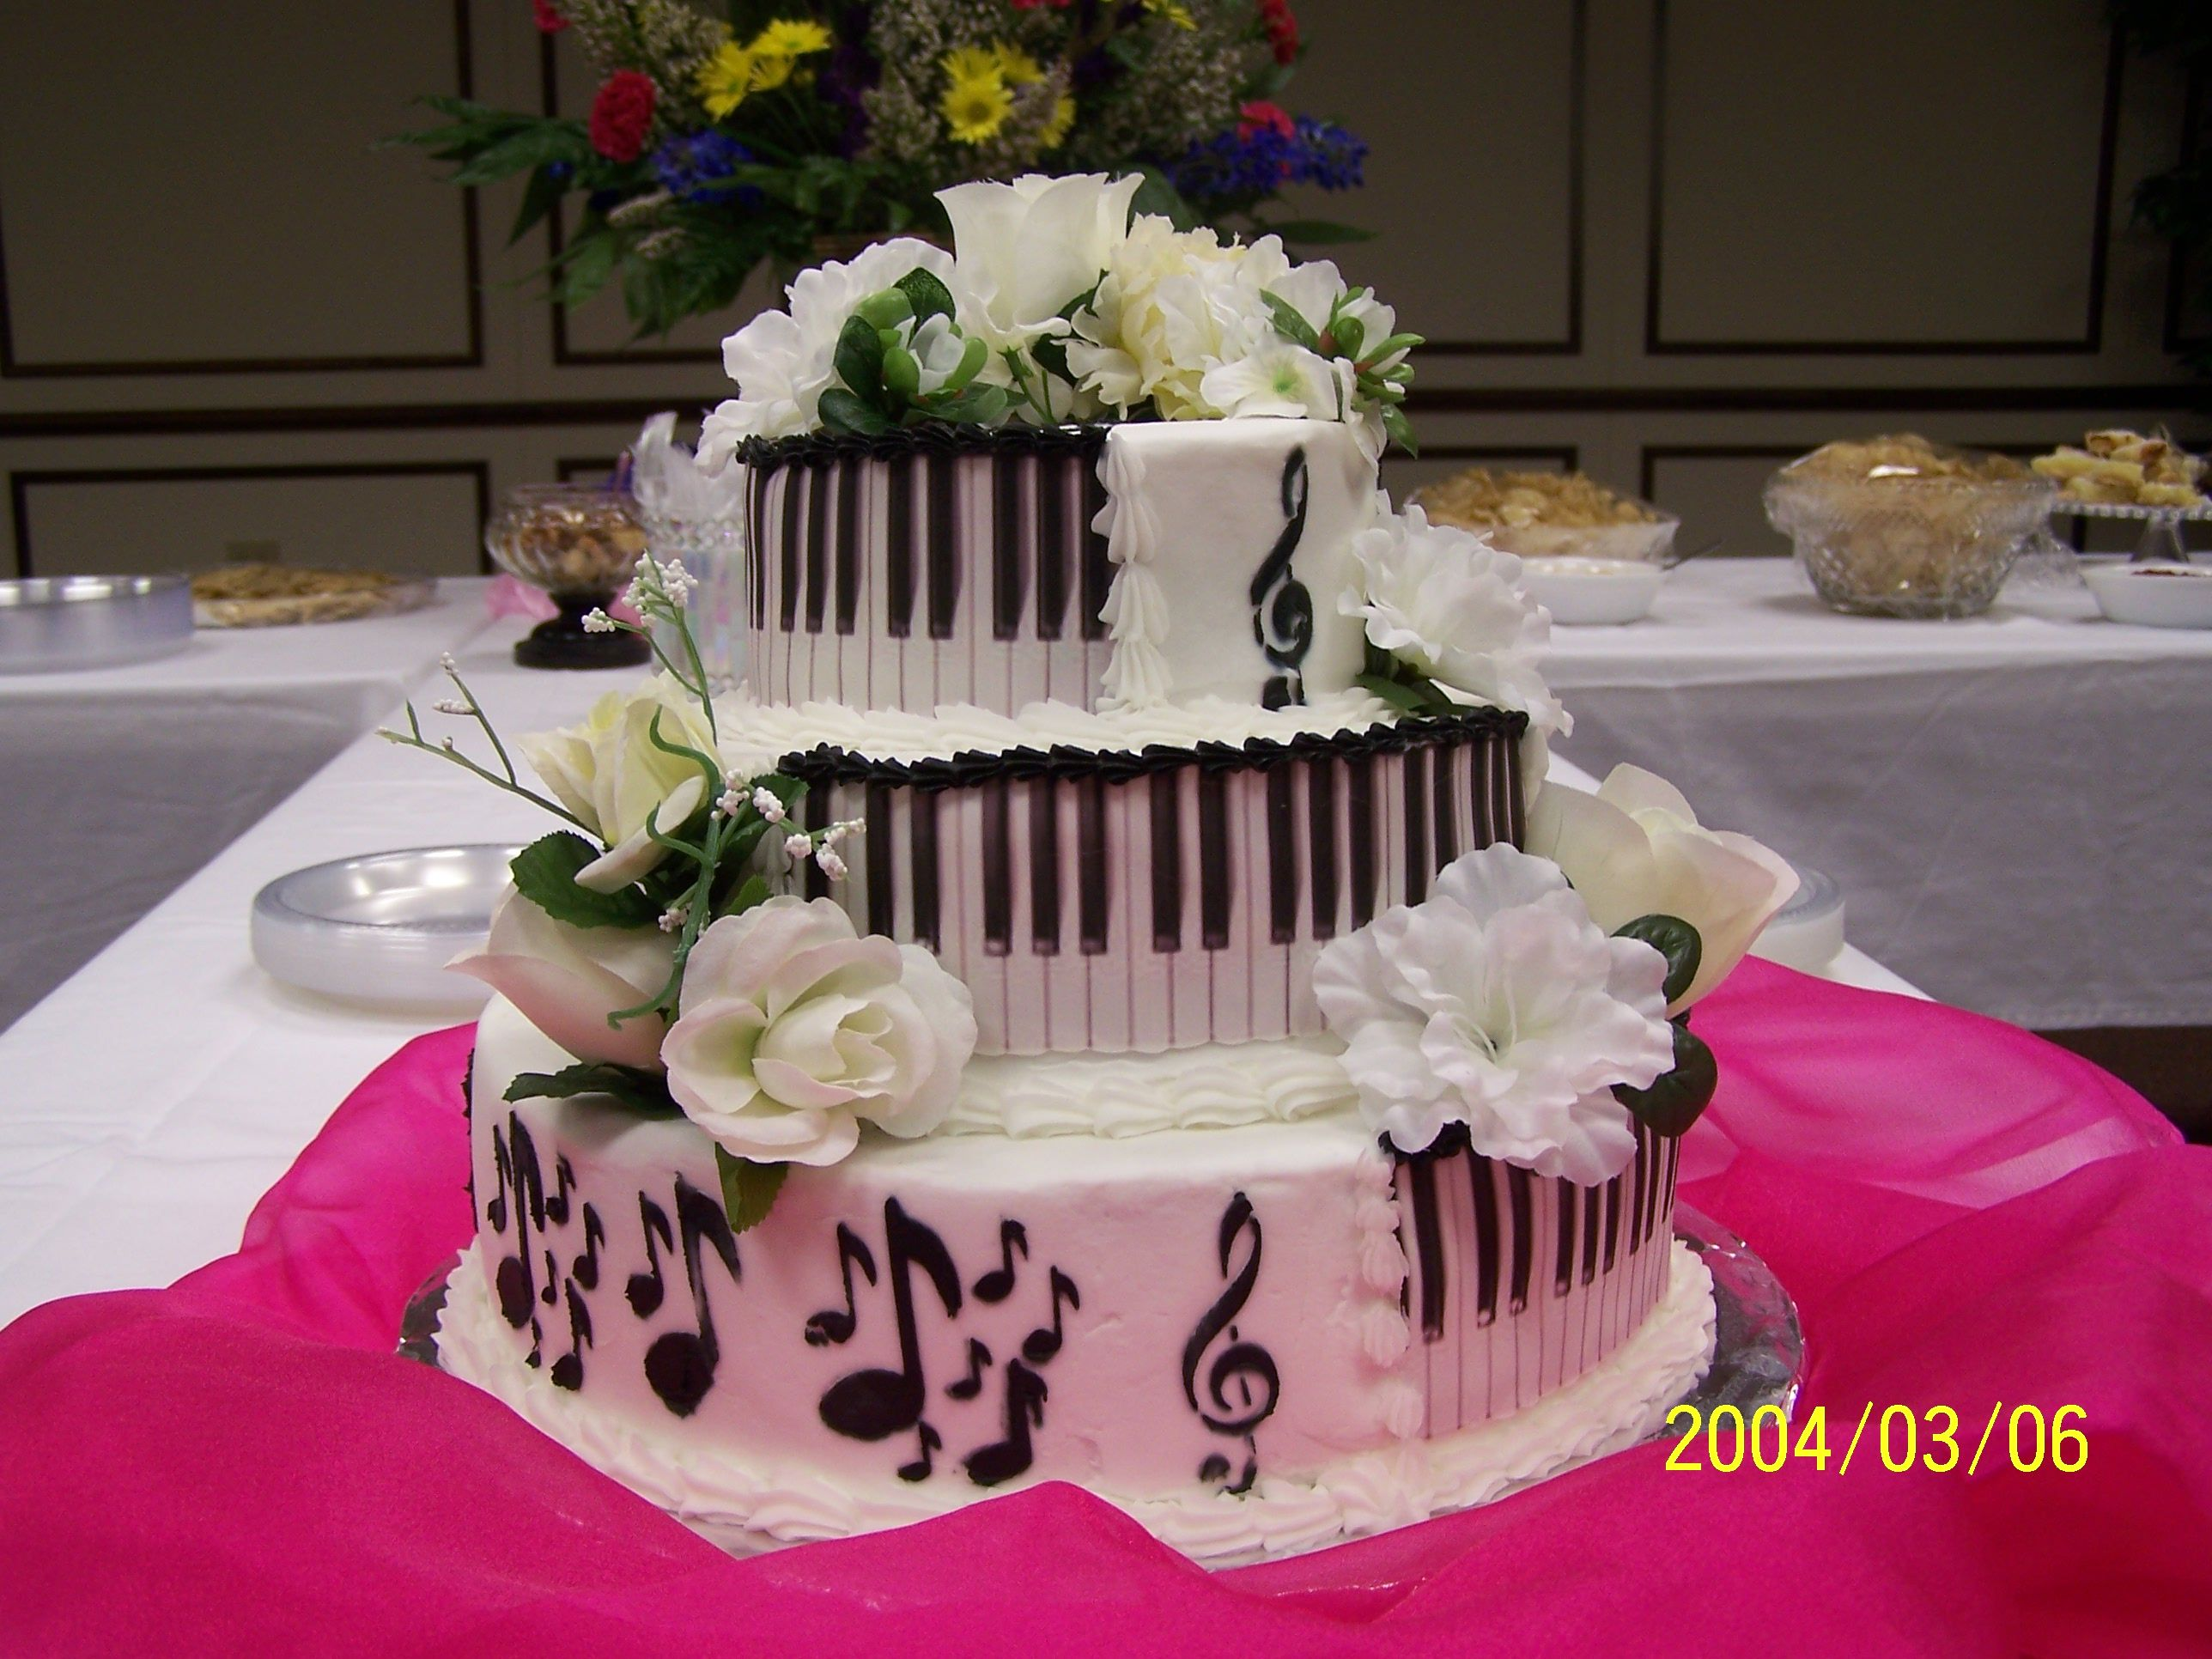 Church Anniversary Cake Images : Church Anniversary Cakes Ideas 57227 Cake For 35th Anniver